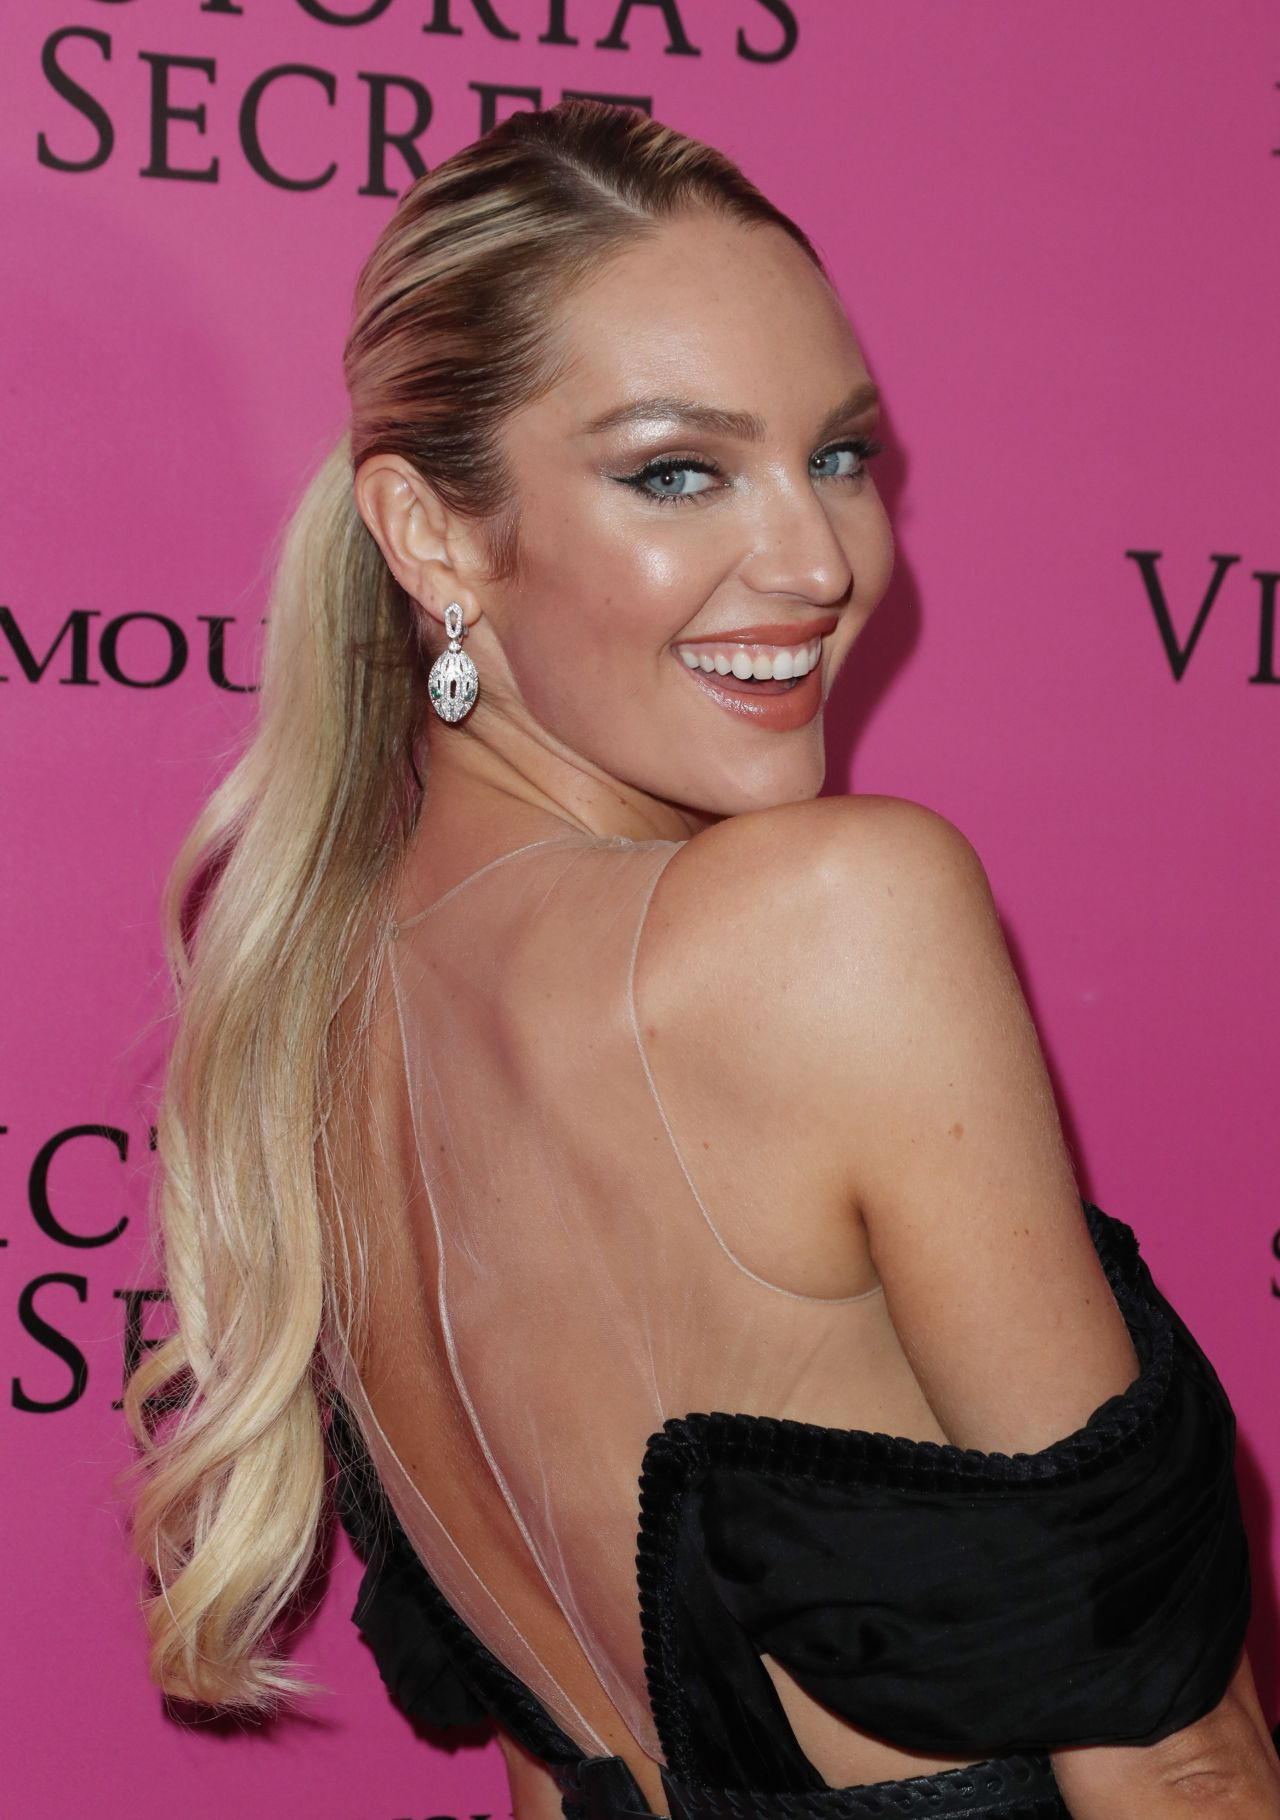 Candice Swanepoel photo #815457